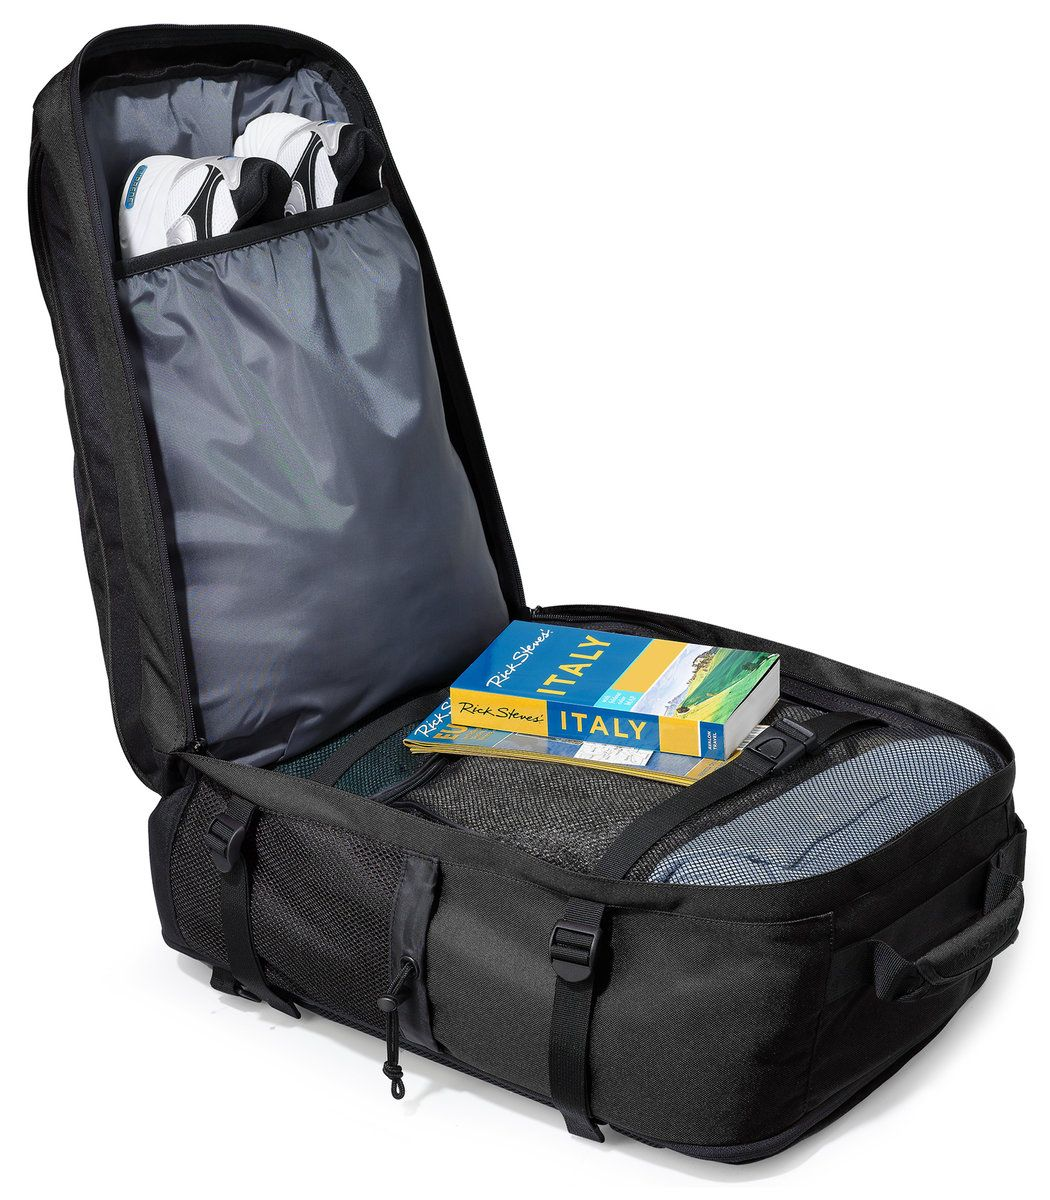 549b08a6933 Convertible Carry-On | Europe gear. | Travel backpack carry on ...